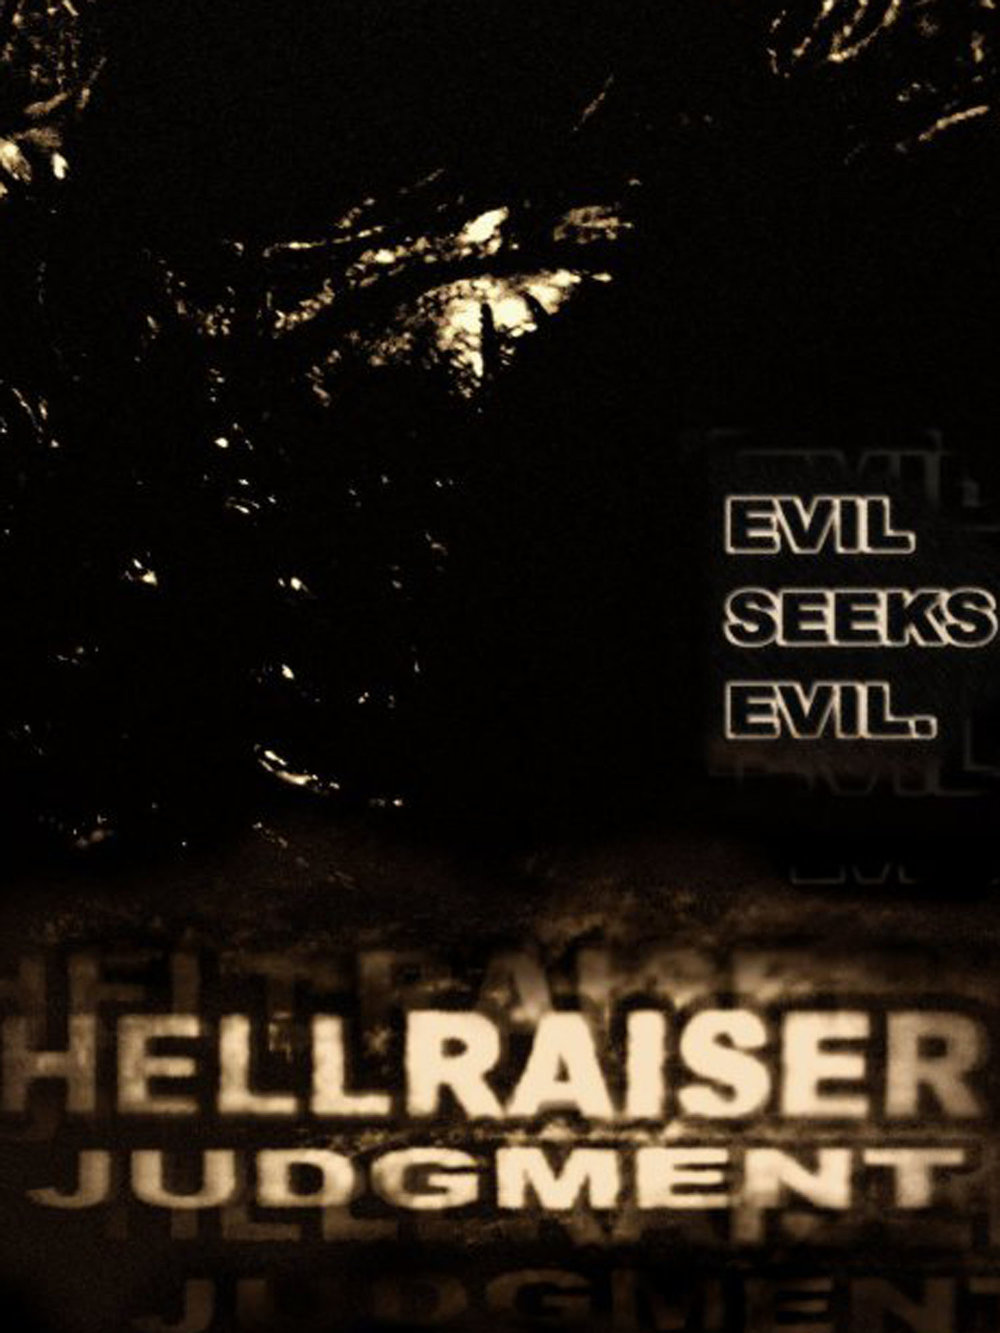 hellraiser-judgment.jpg